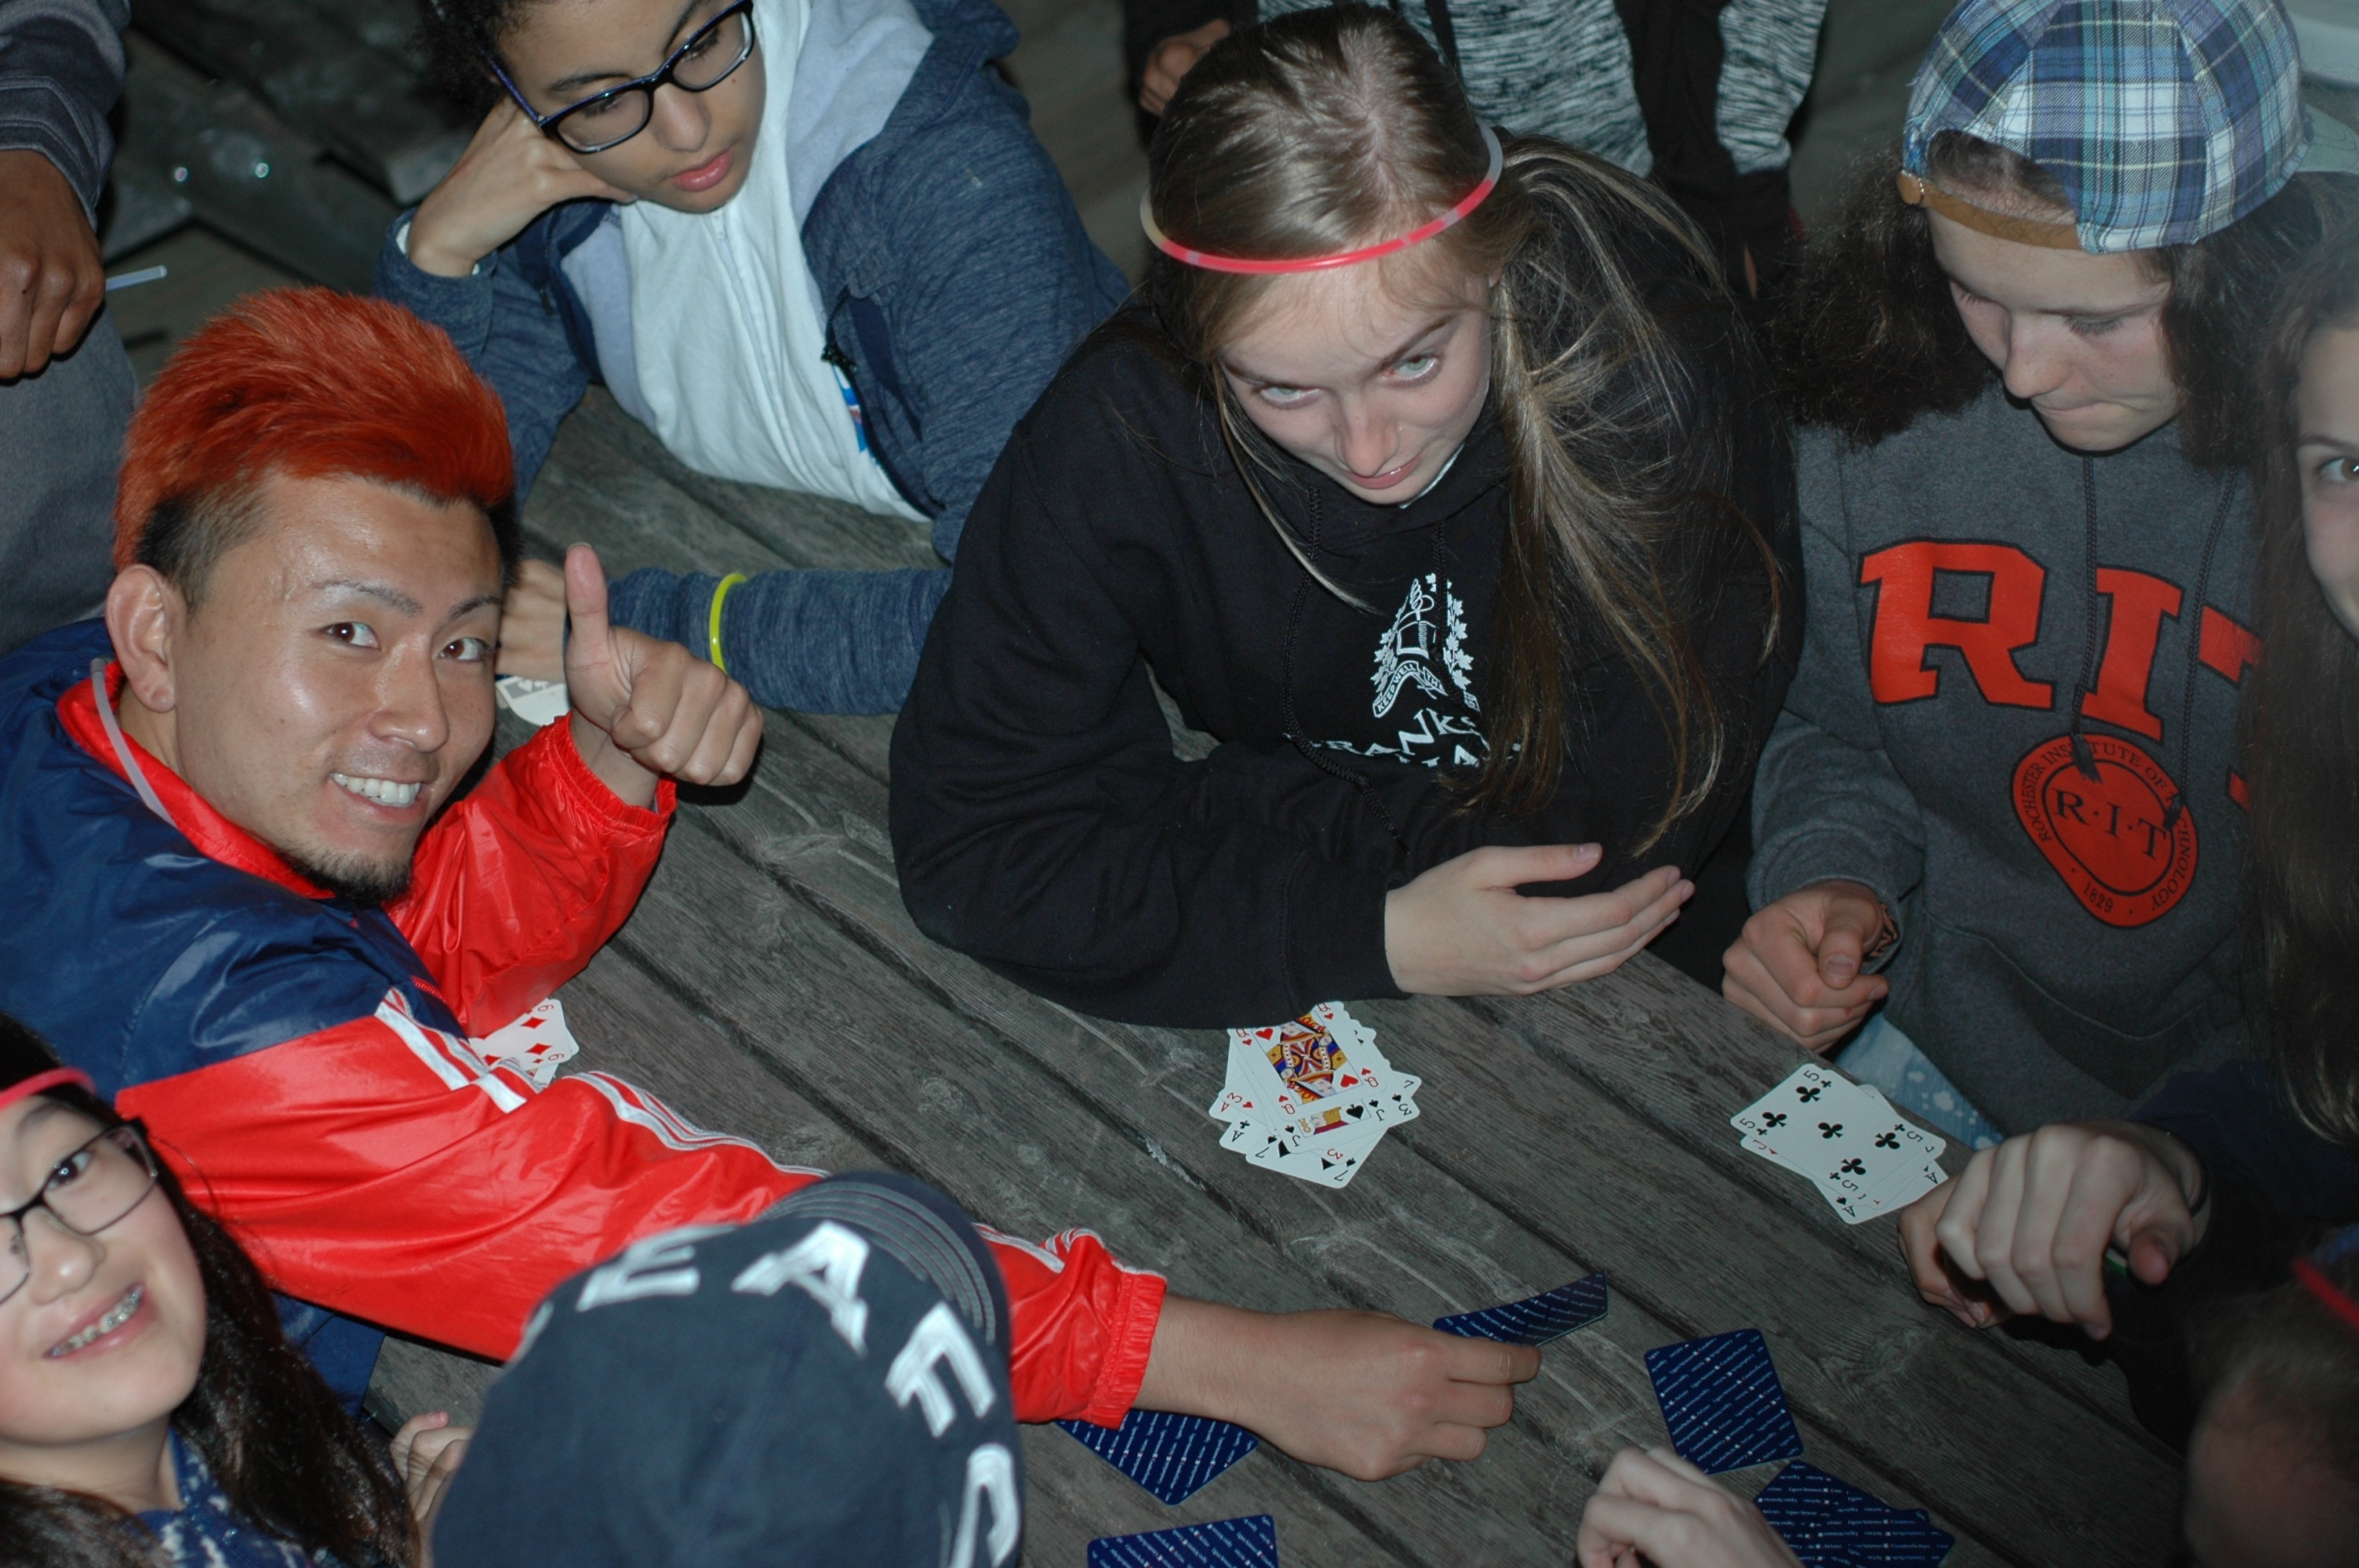 Campers playing cards.